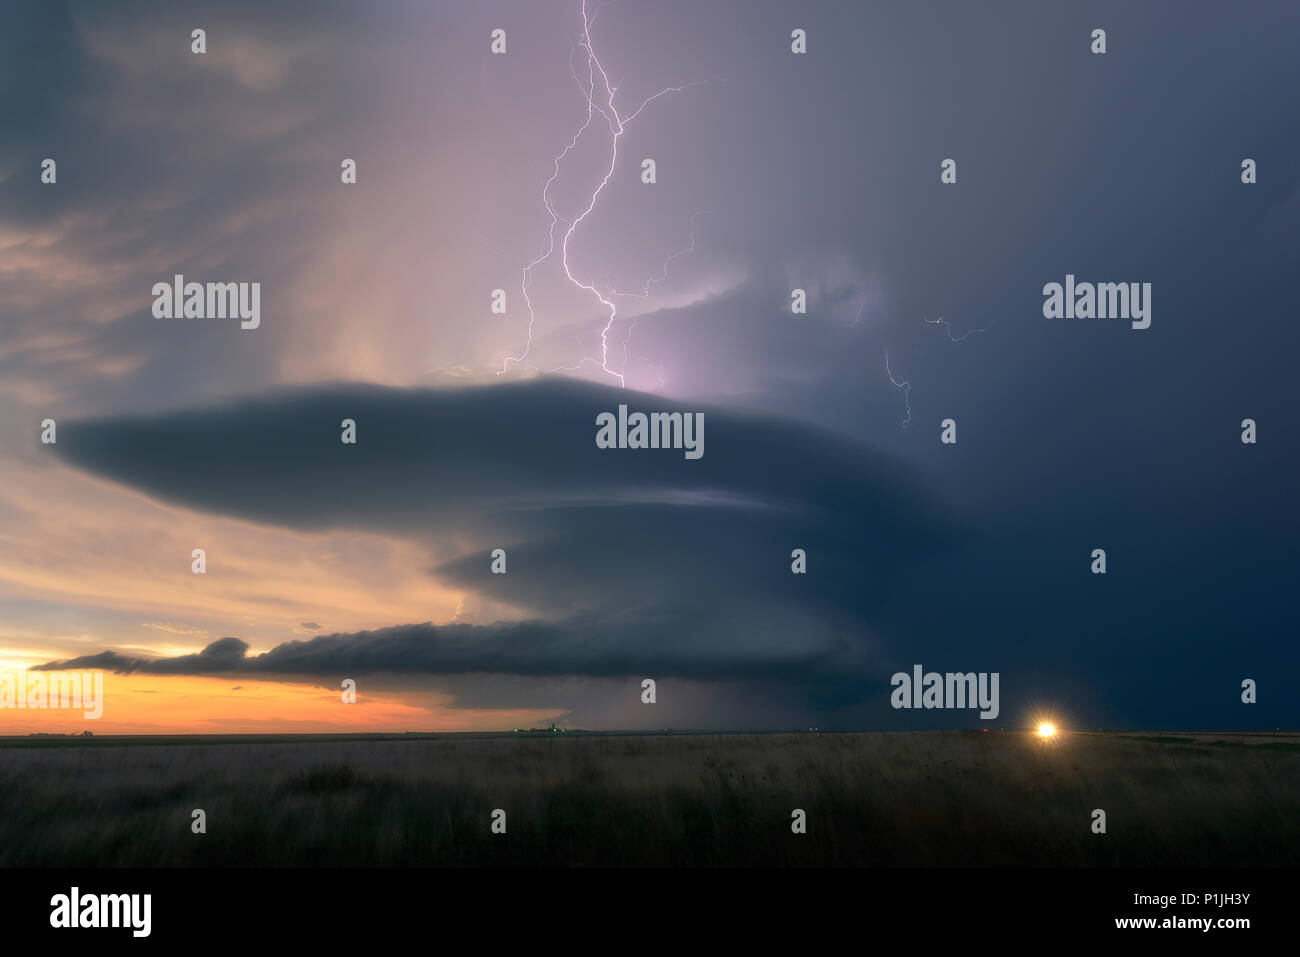 Cloud-to-cloud lightning during sunset with a supercell over the fields of Leoti, Wichita County, Kansas, USA on May 21st 2016 - Stock Image